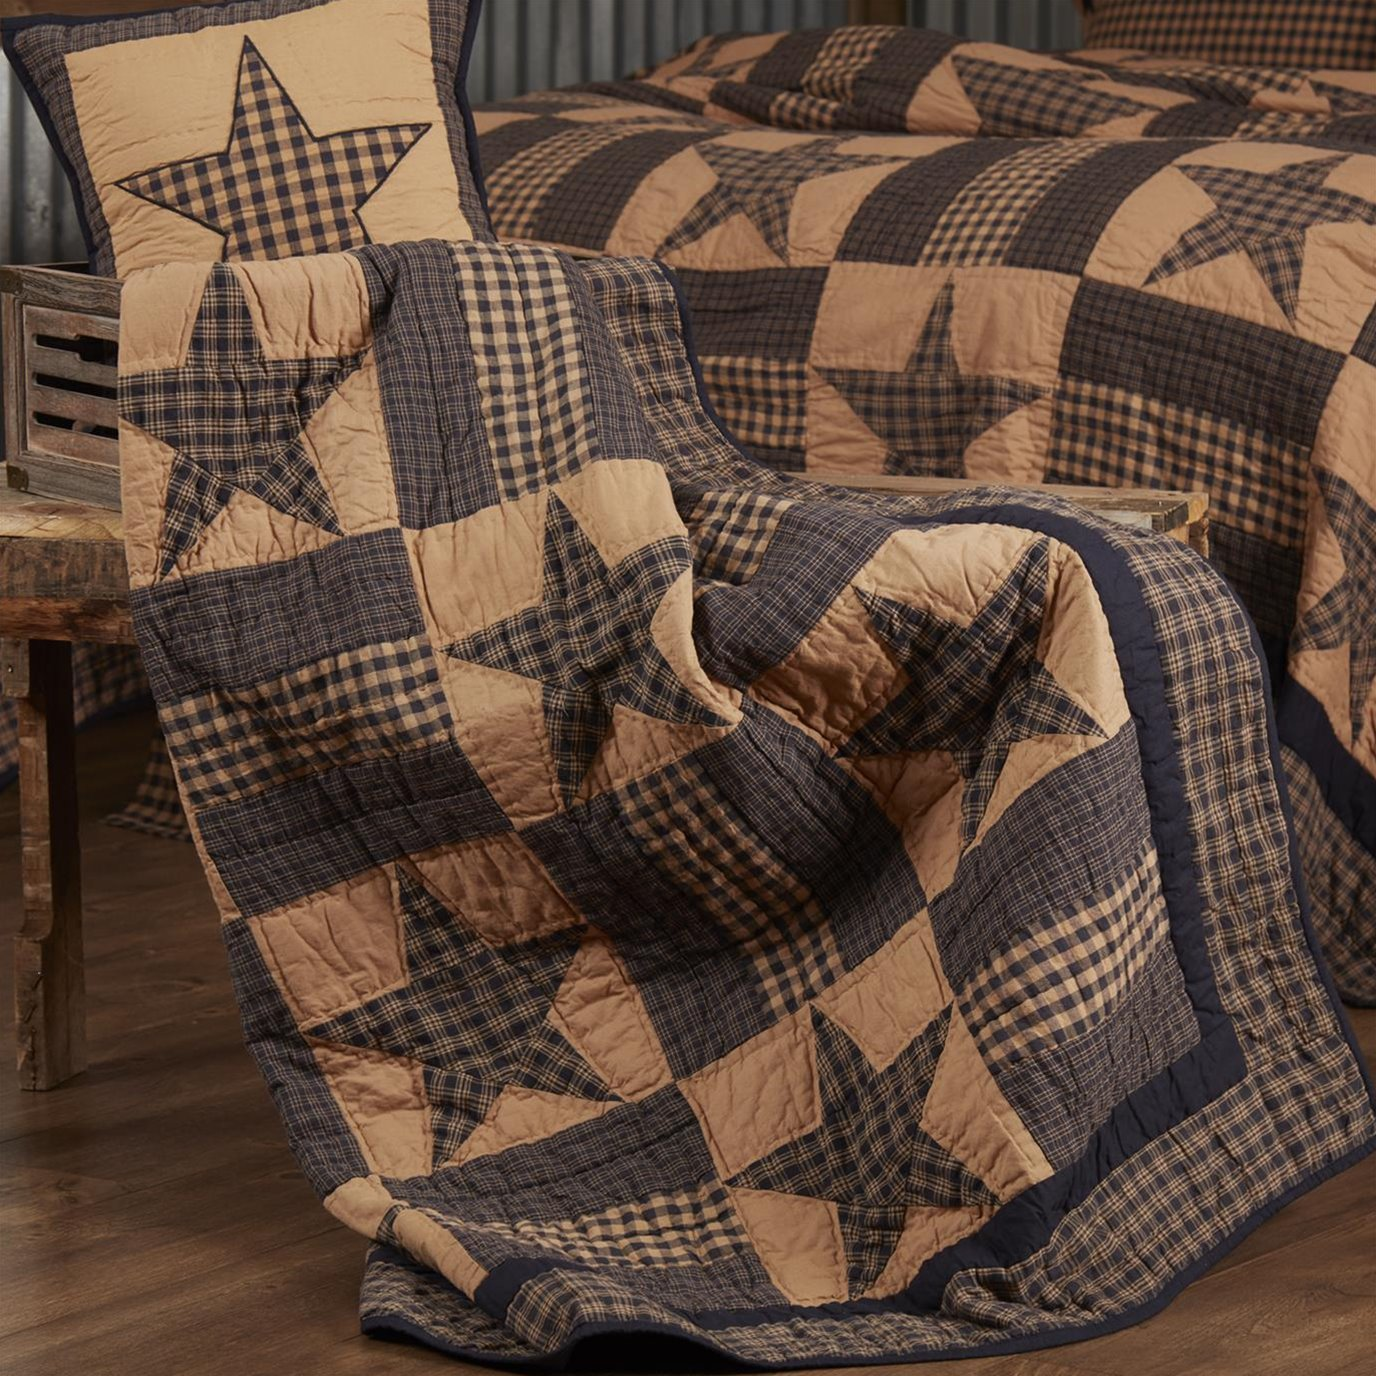 Teton Star Quilted Throw 60x50